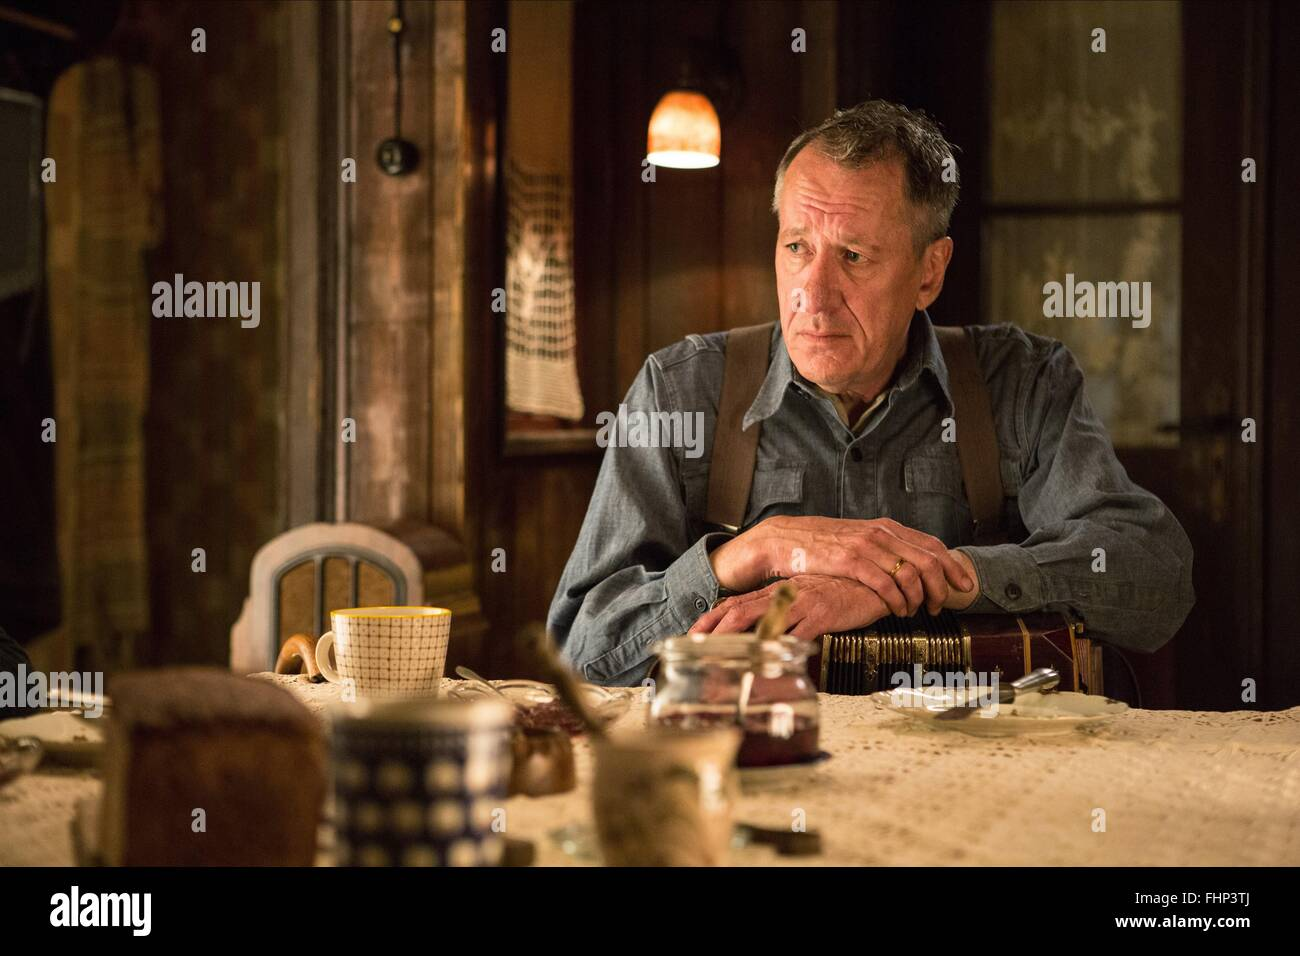 GEOFFREY RUSH THE BOOK THIEF (2013) - Stock Image